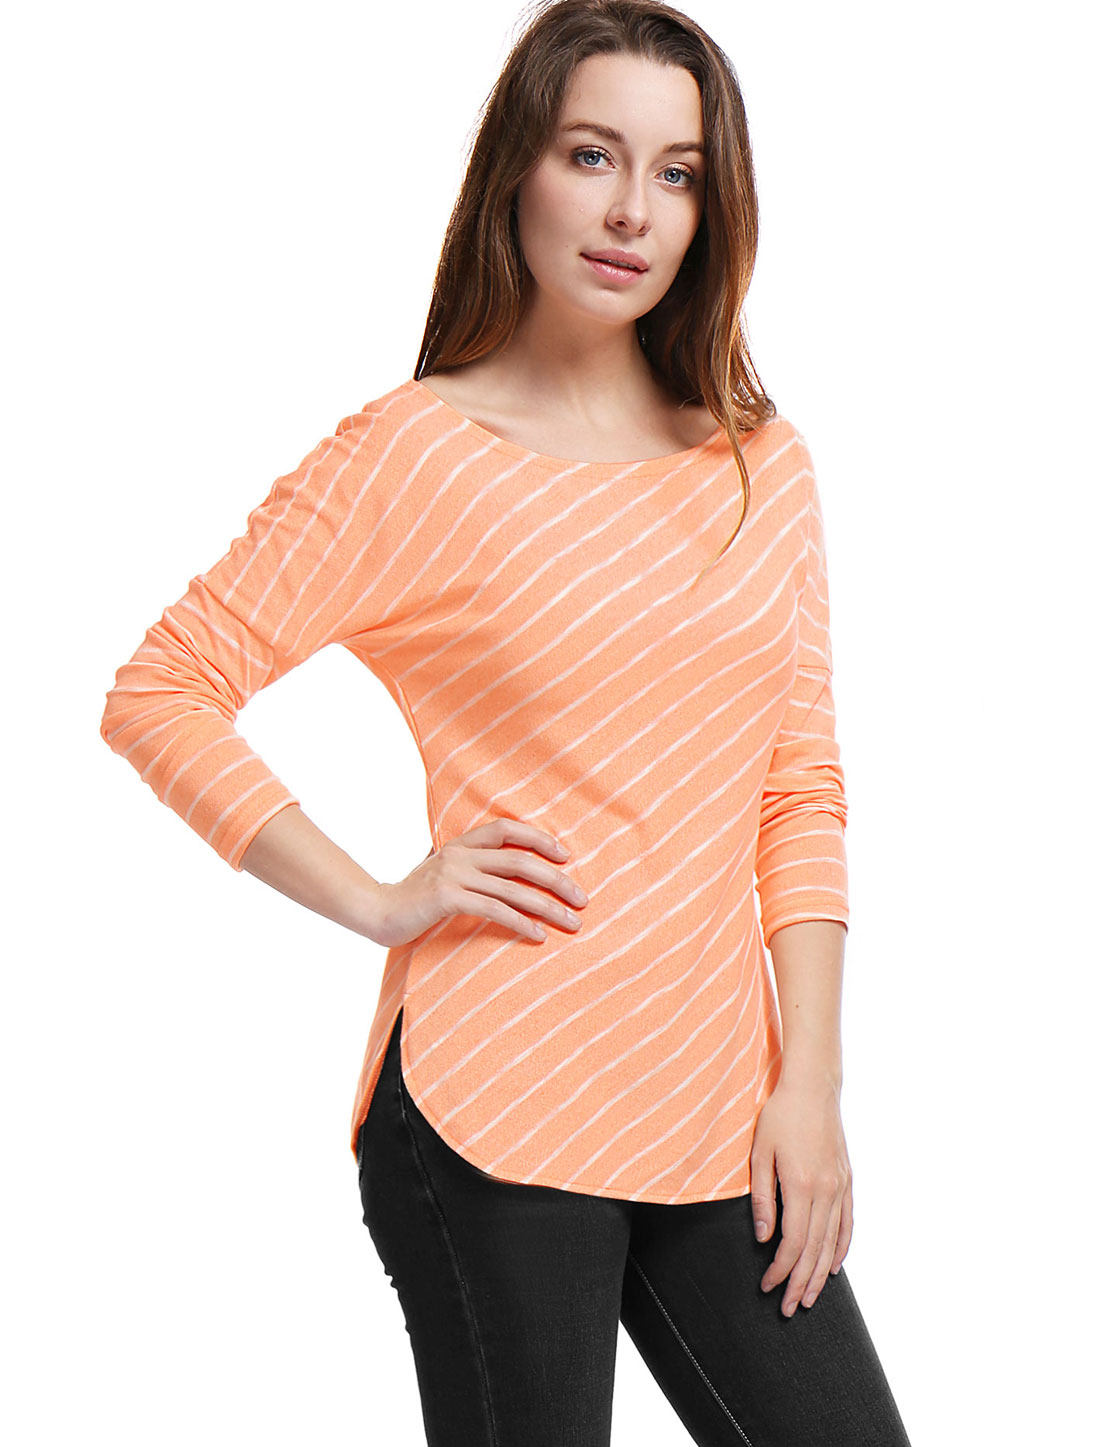 Women Stripes Scoop Neck Long Drop Sleeves Top Orange XL